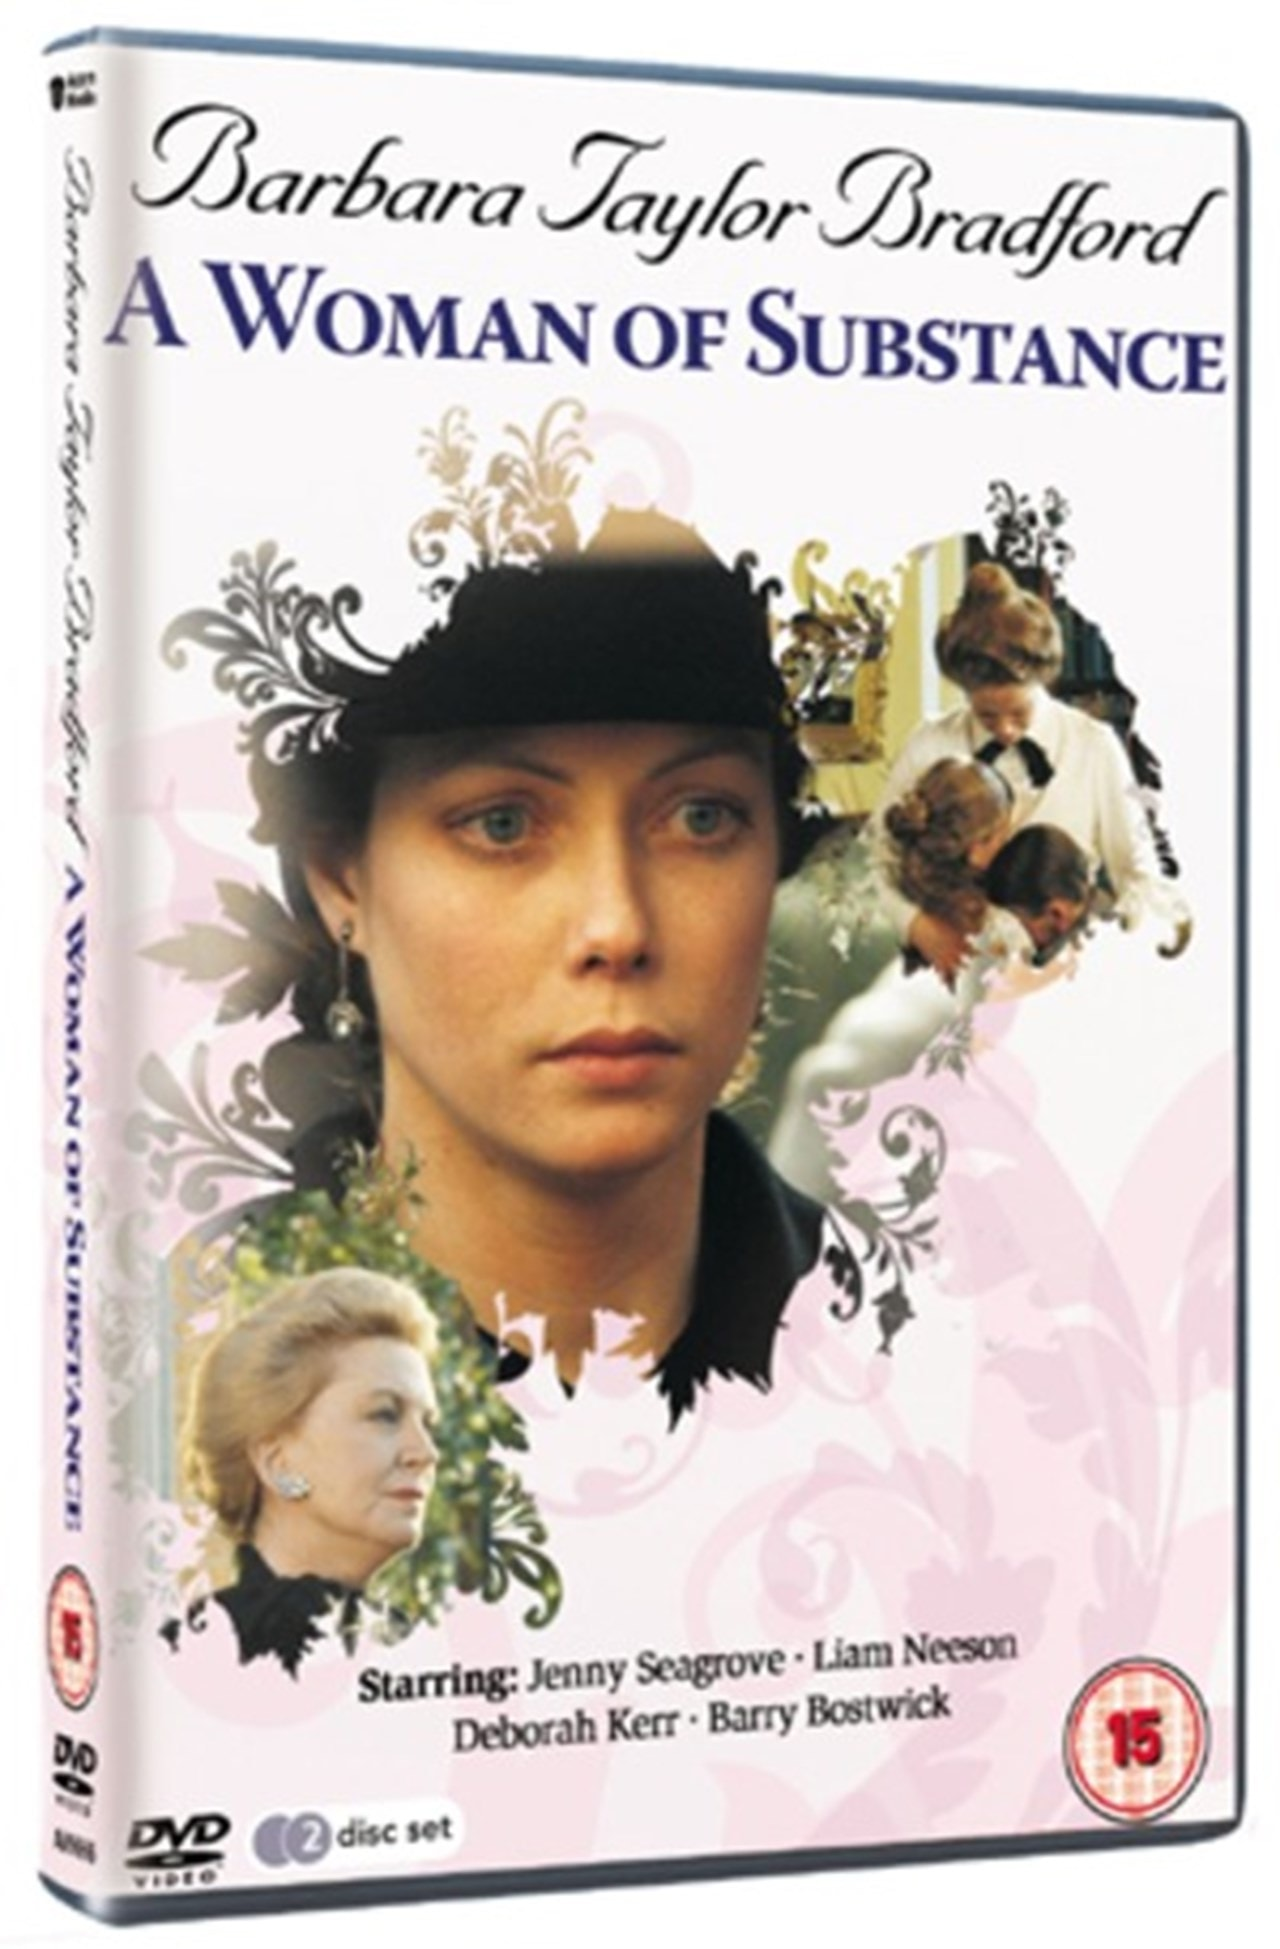 A Woman of Substance - 1